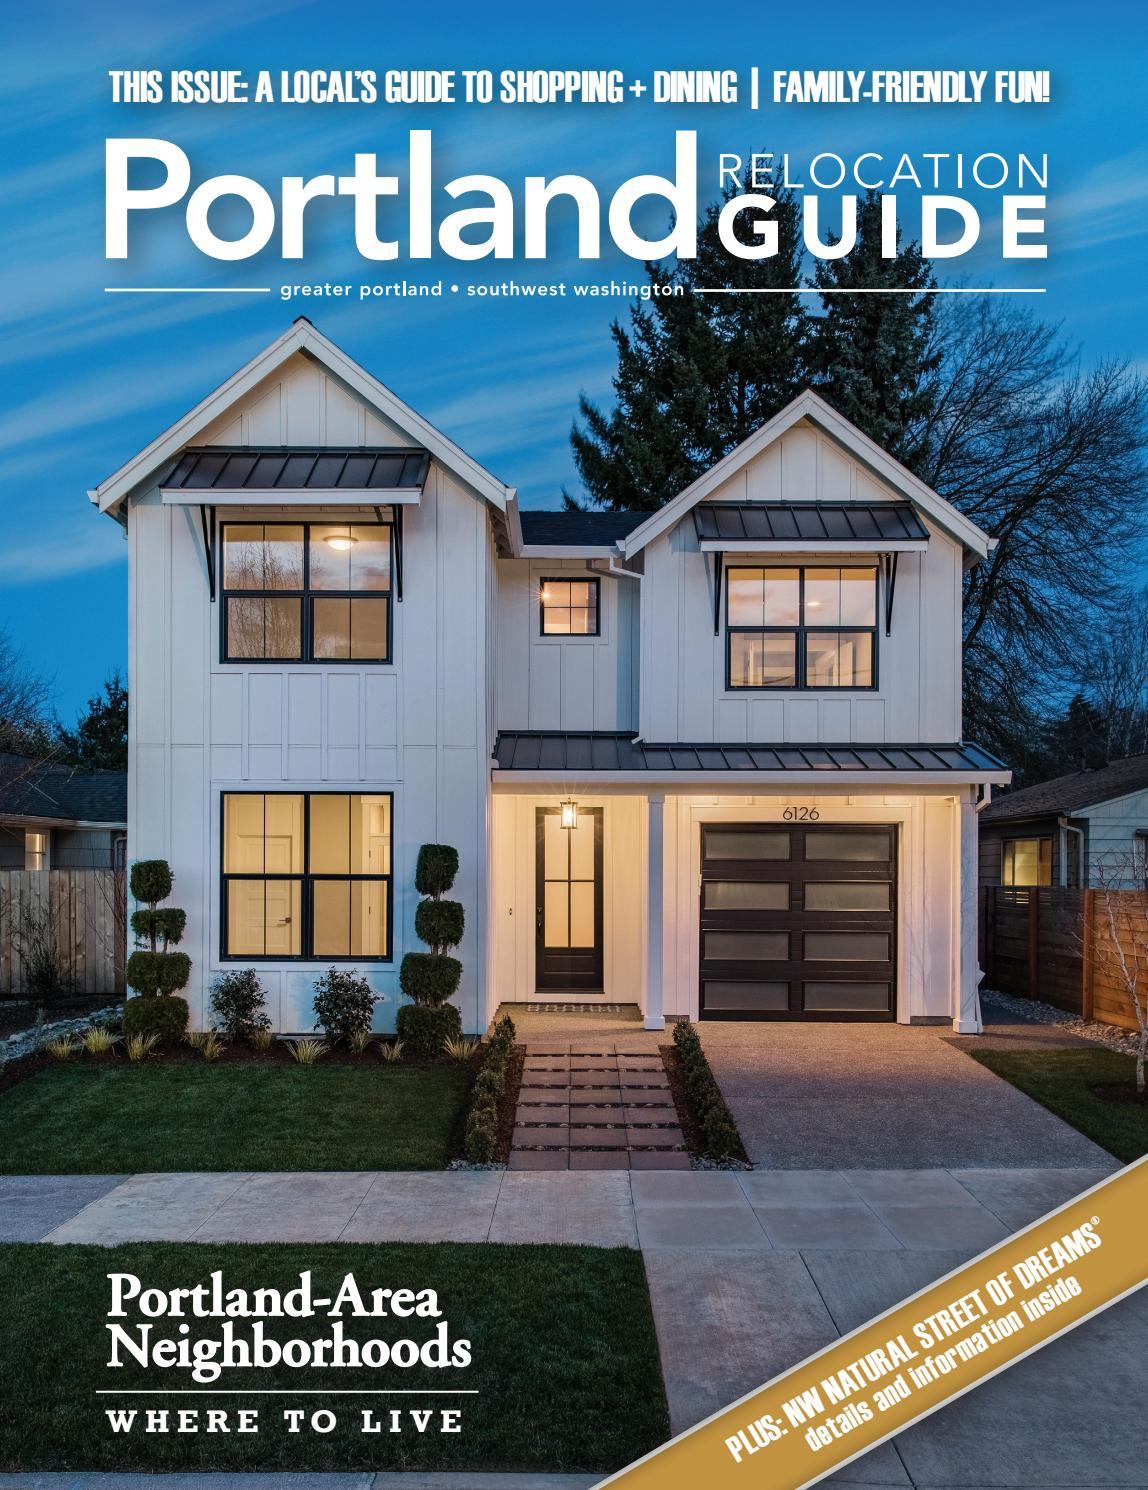 straight decorative interior wrought iron house indoor.htm portland relocation guide 2019 issue 1 by web media group issuu  portland relocation guide 2019 issue